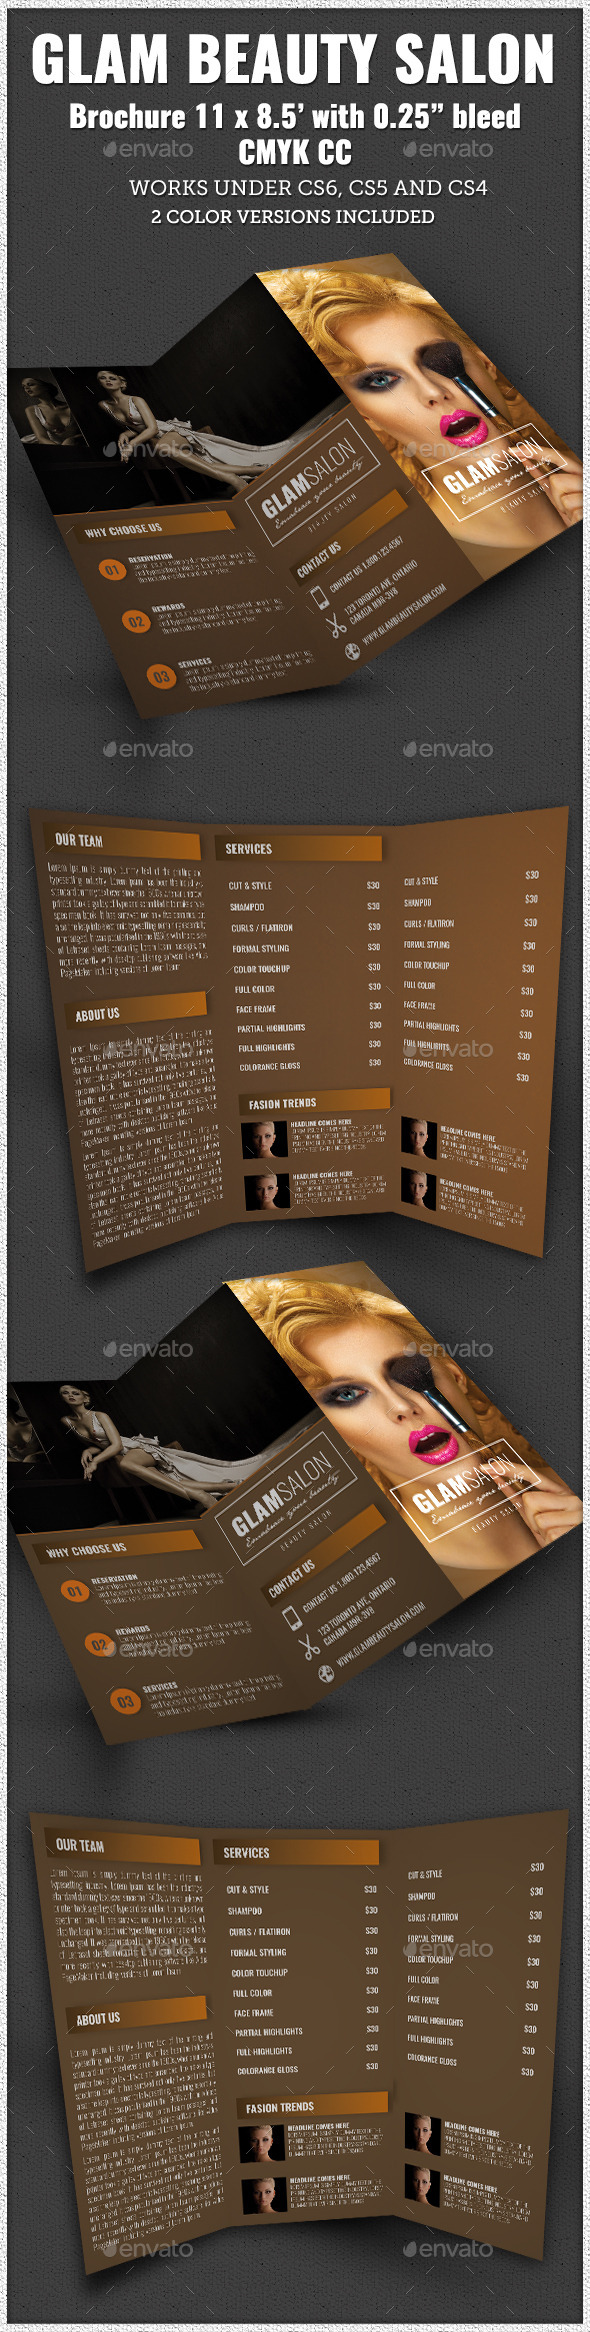 Glam Beauty Salon Trifold Brochure Indesign - Corporate Brochures